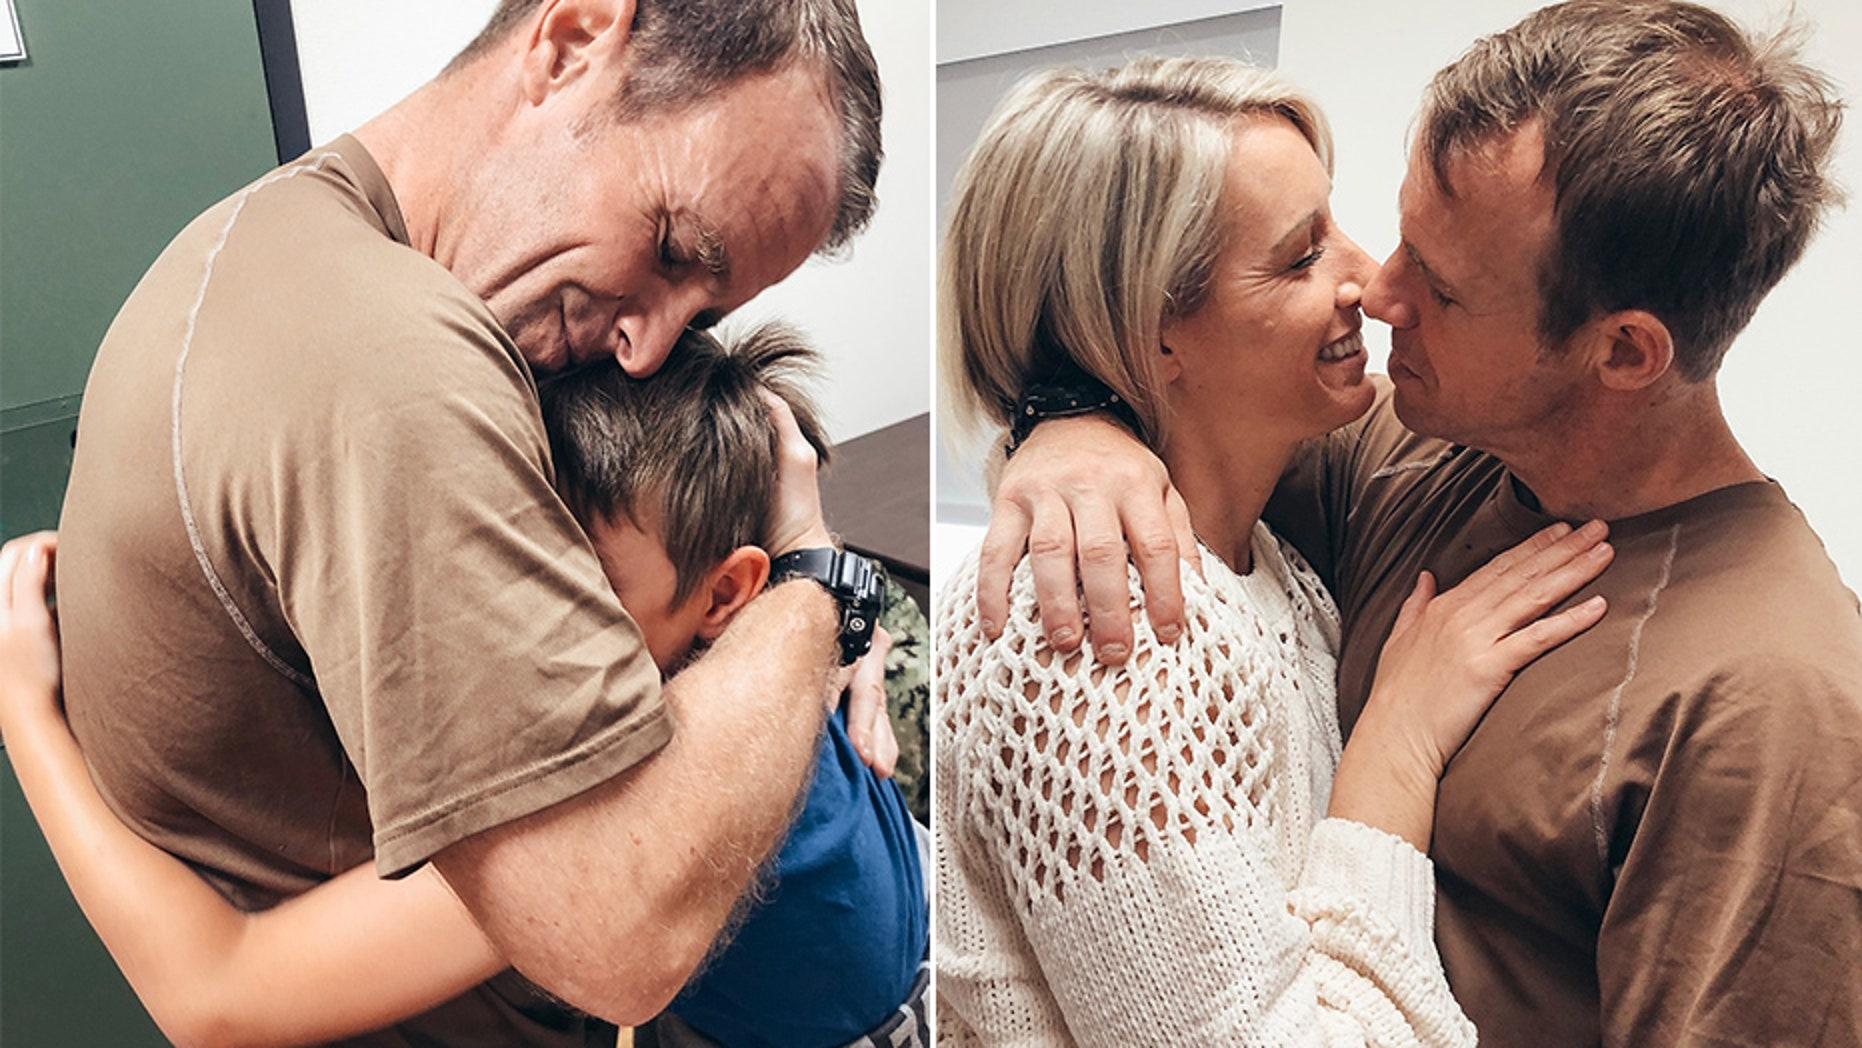 Navy SEAL Eddie Gallagher, who is facing a war crimes trial, has been reunited with his family following his relocation from a Navy brig in California.